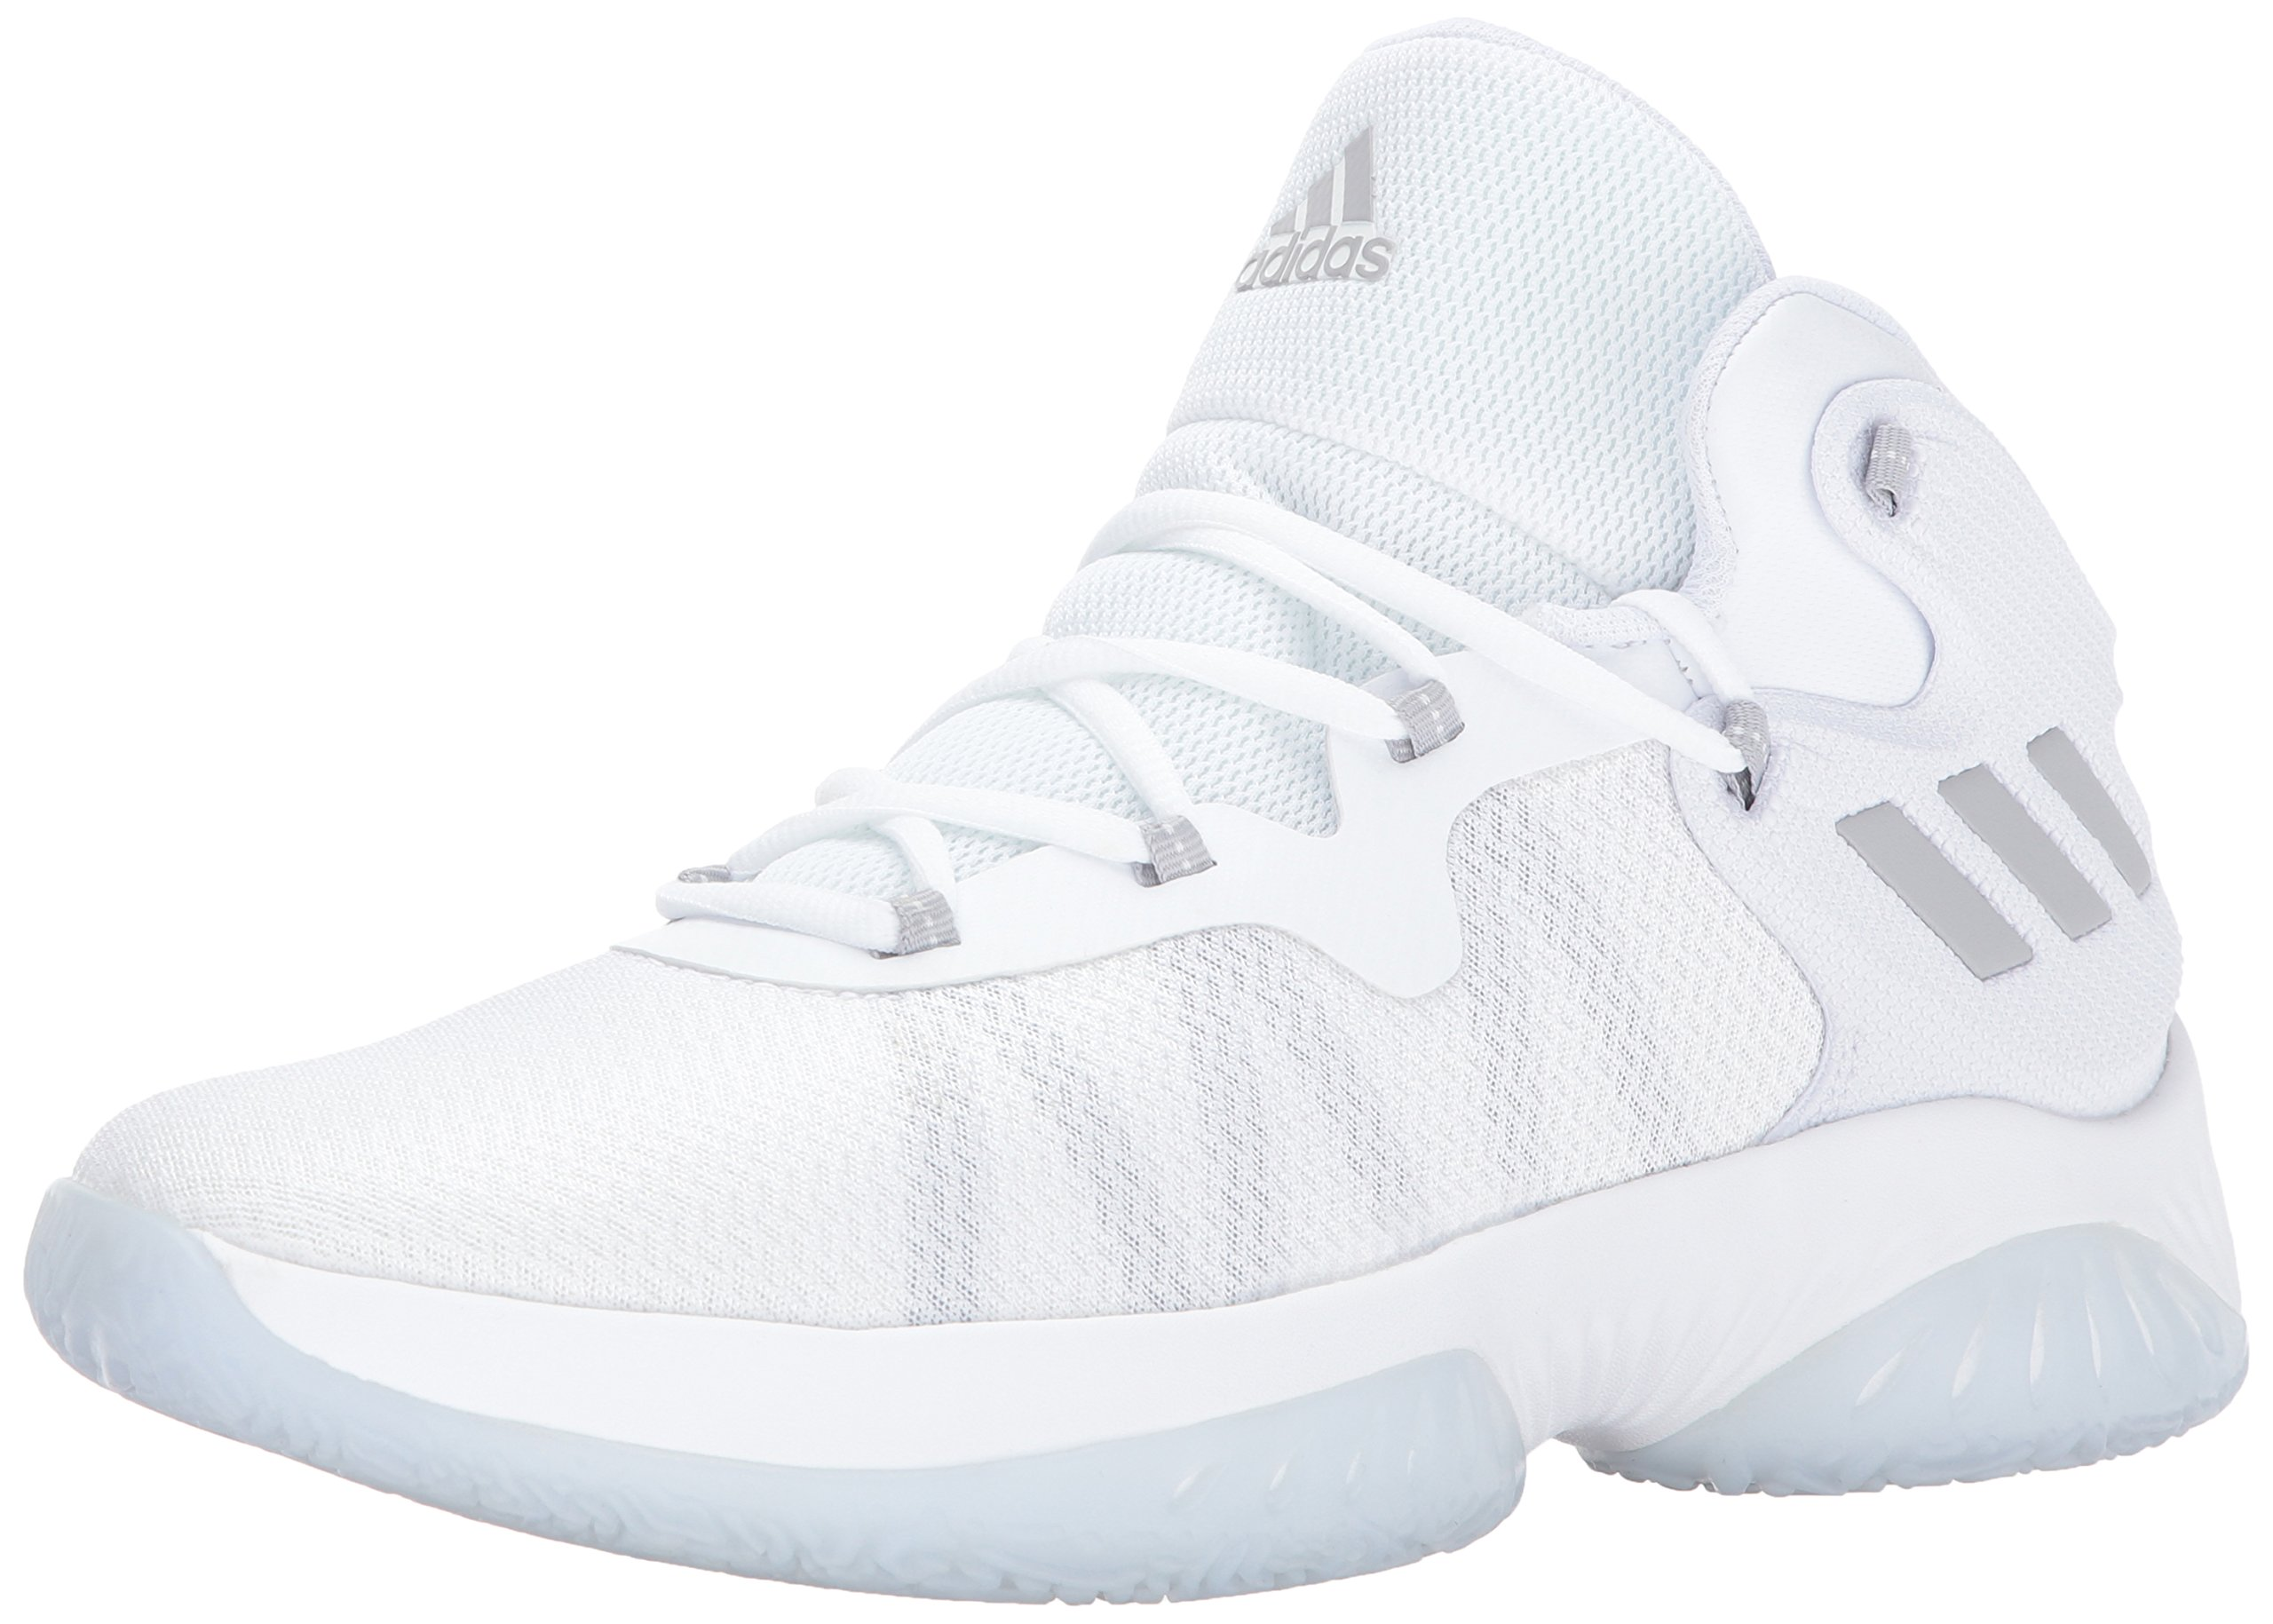 adidas Men's Explosive Bounce Basketball Shoes, Grey Two/White, (19 M US) by adidas